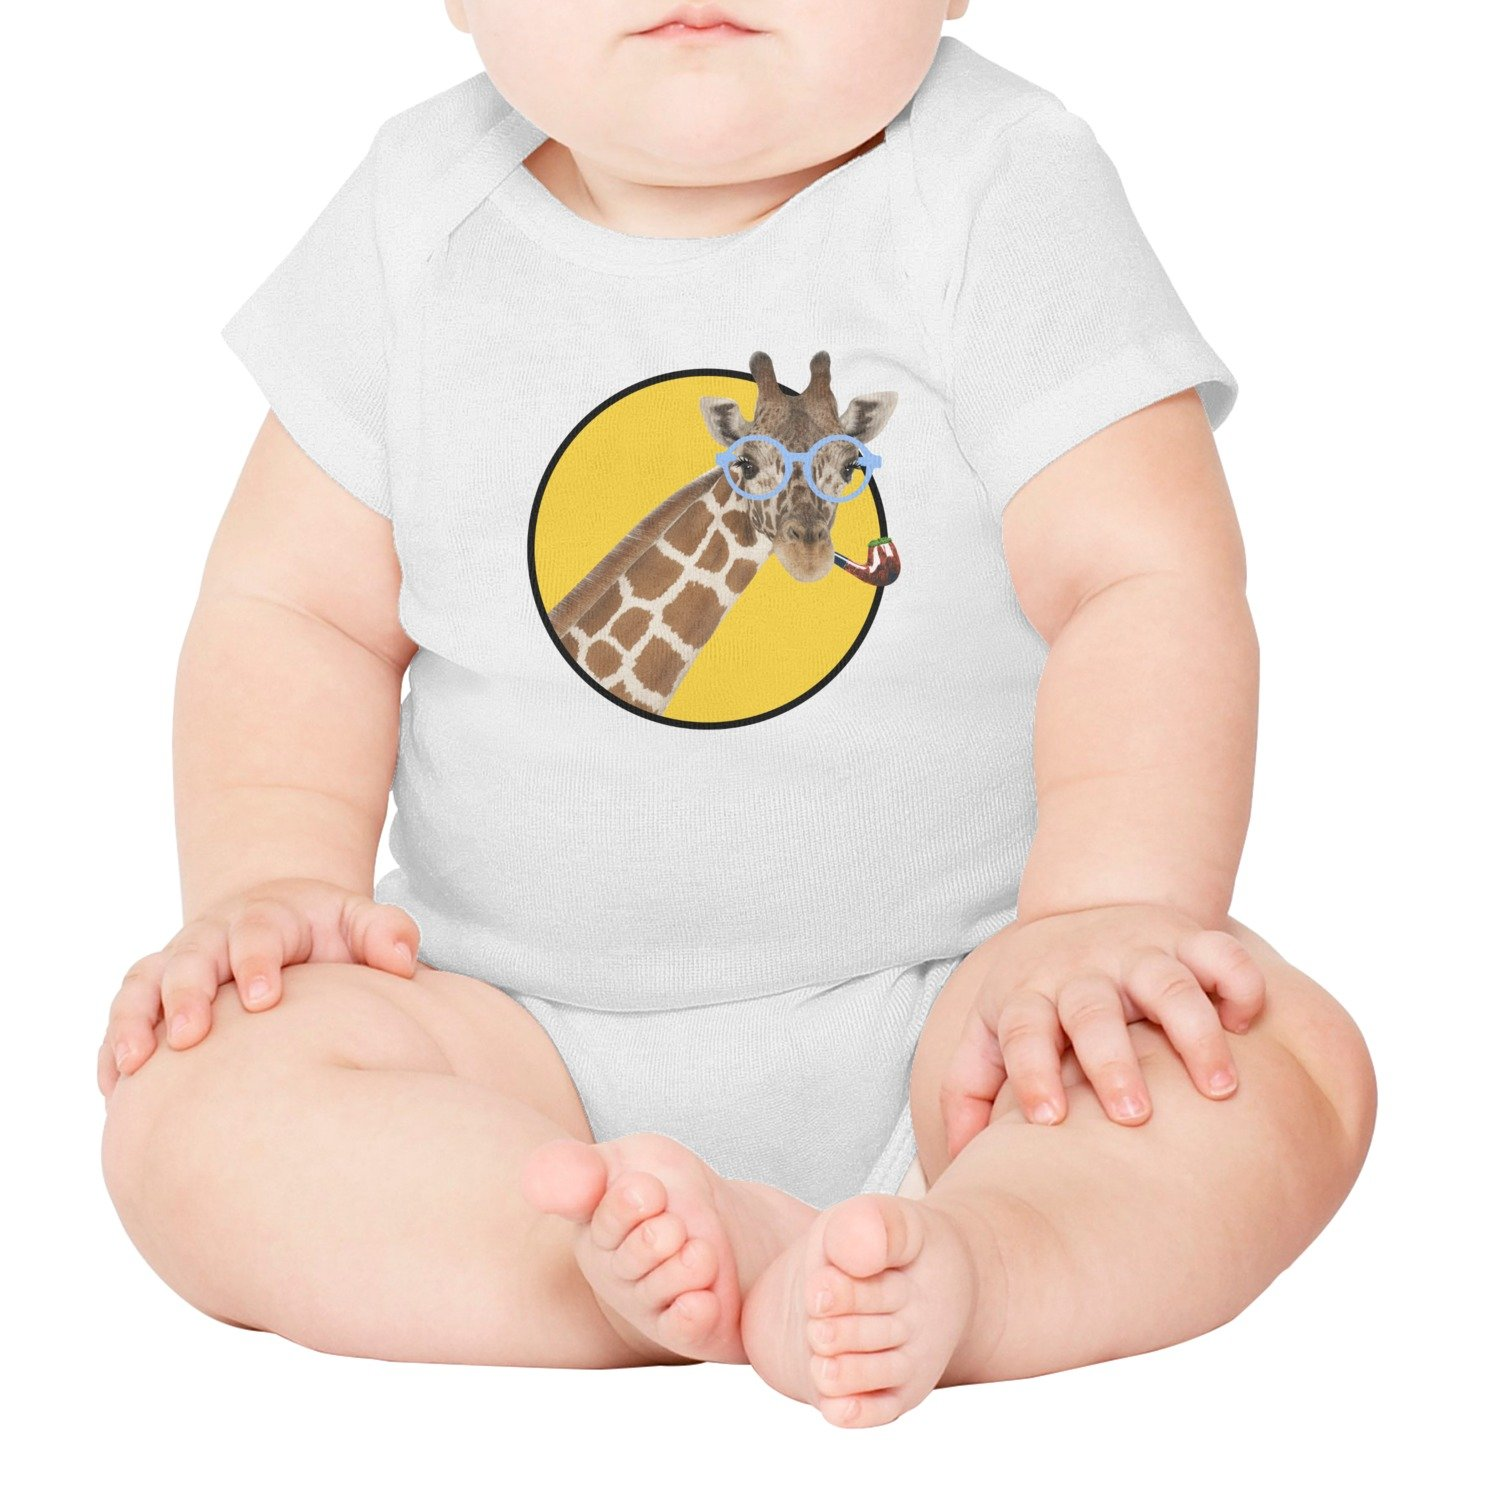 FanYe Funny Giraffe with Glasses What's Up Unisex Infant Baby Onesie Bodysuit Clothes